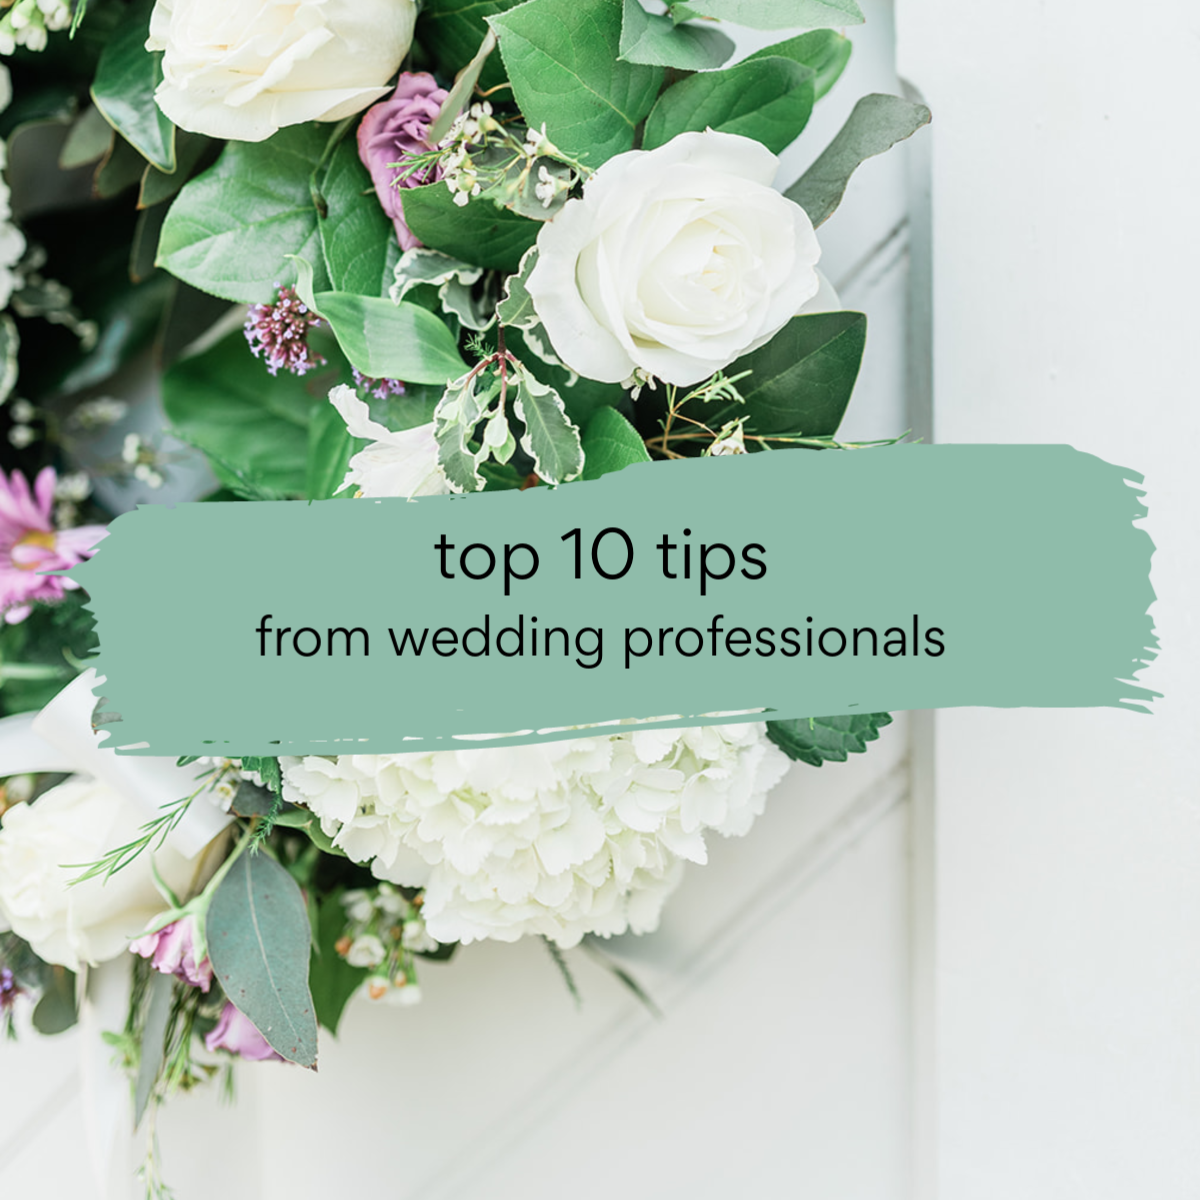 top 10 tips image FB